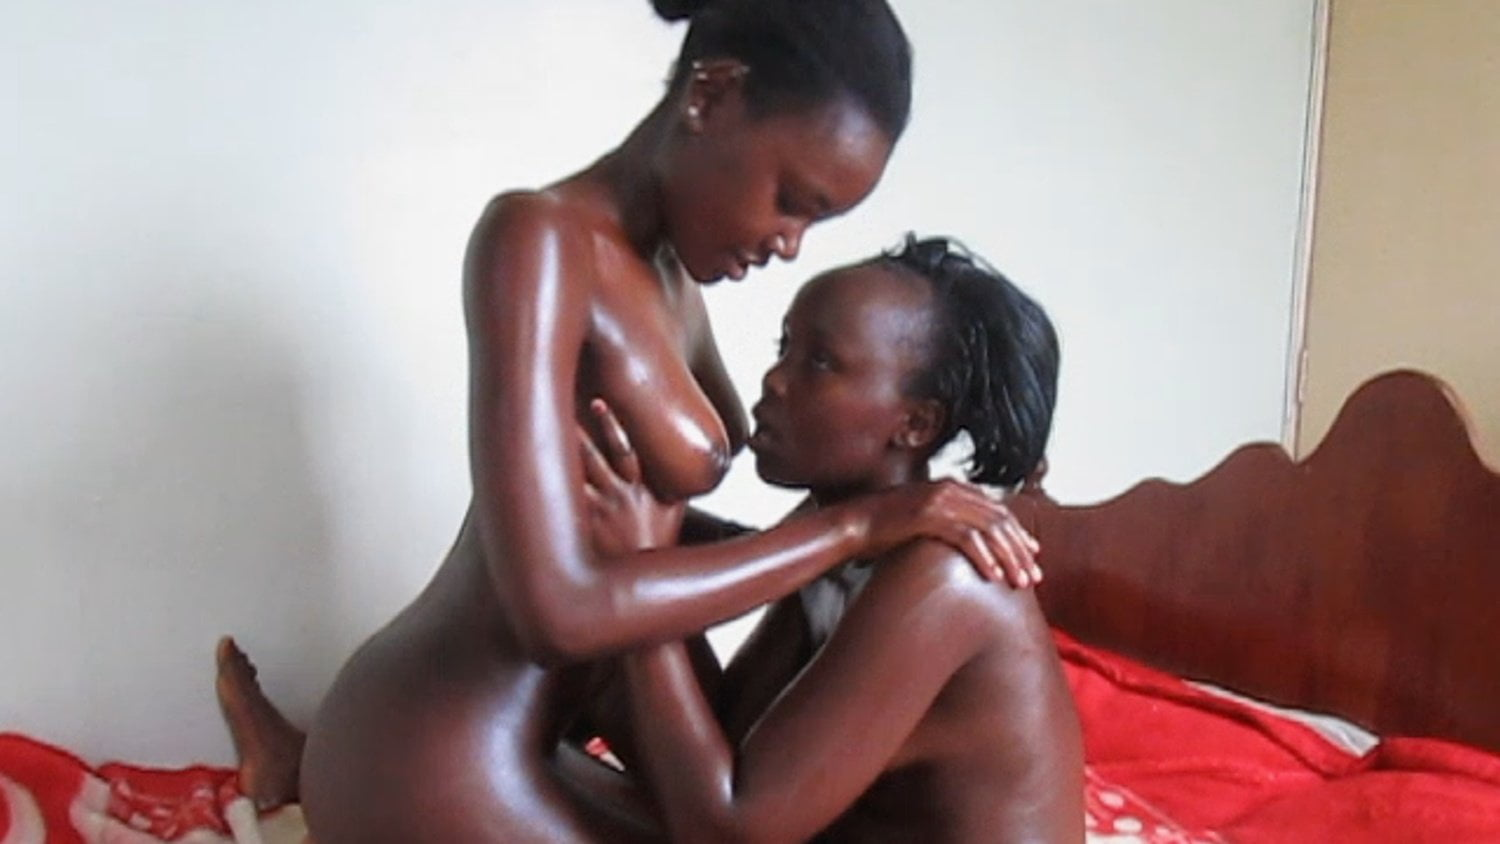 African Lesbo Couple Have Intense Orgasm, Porn 9F Xhamster De-1362